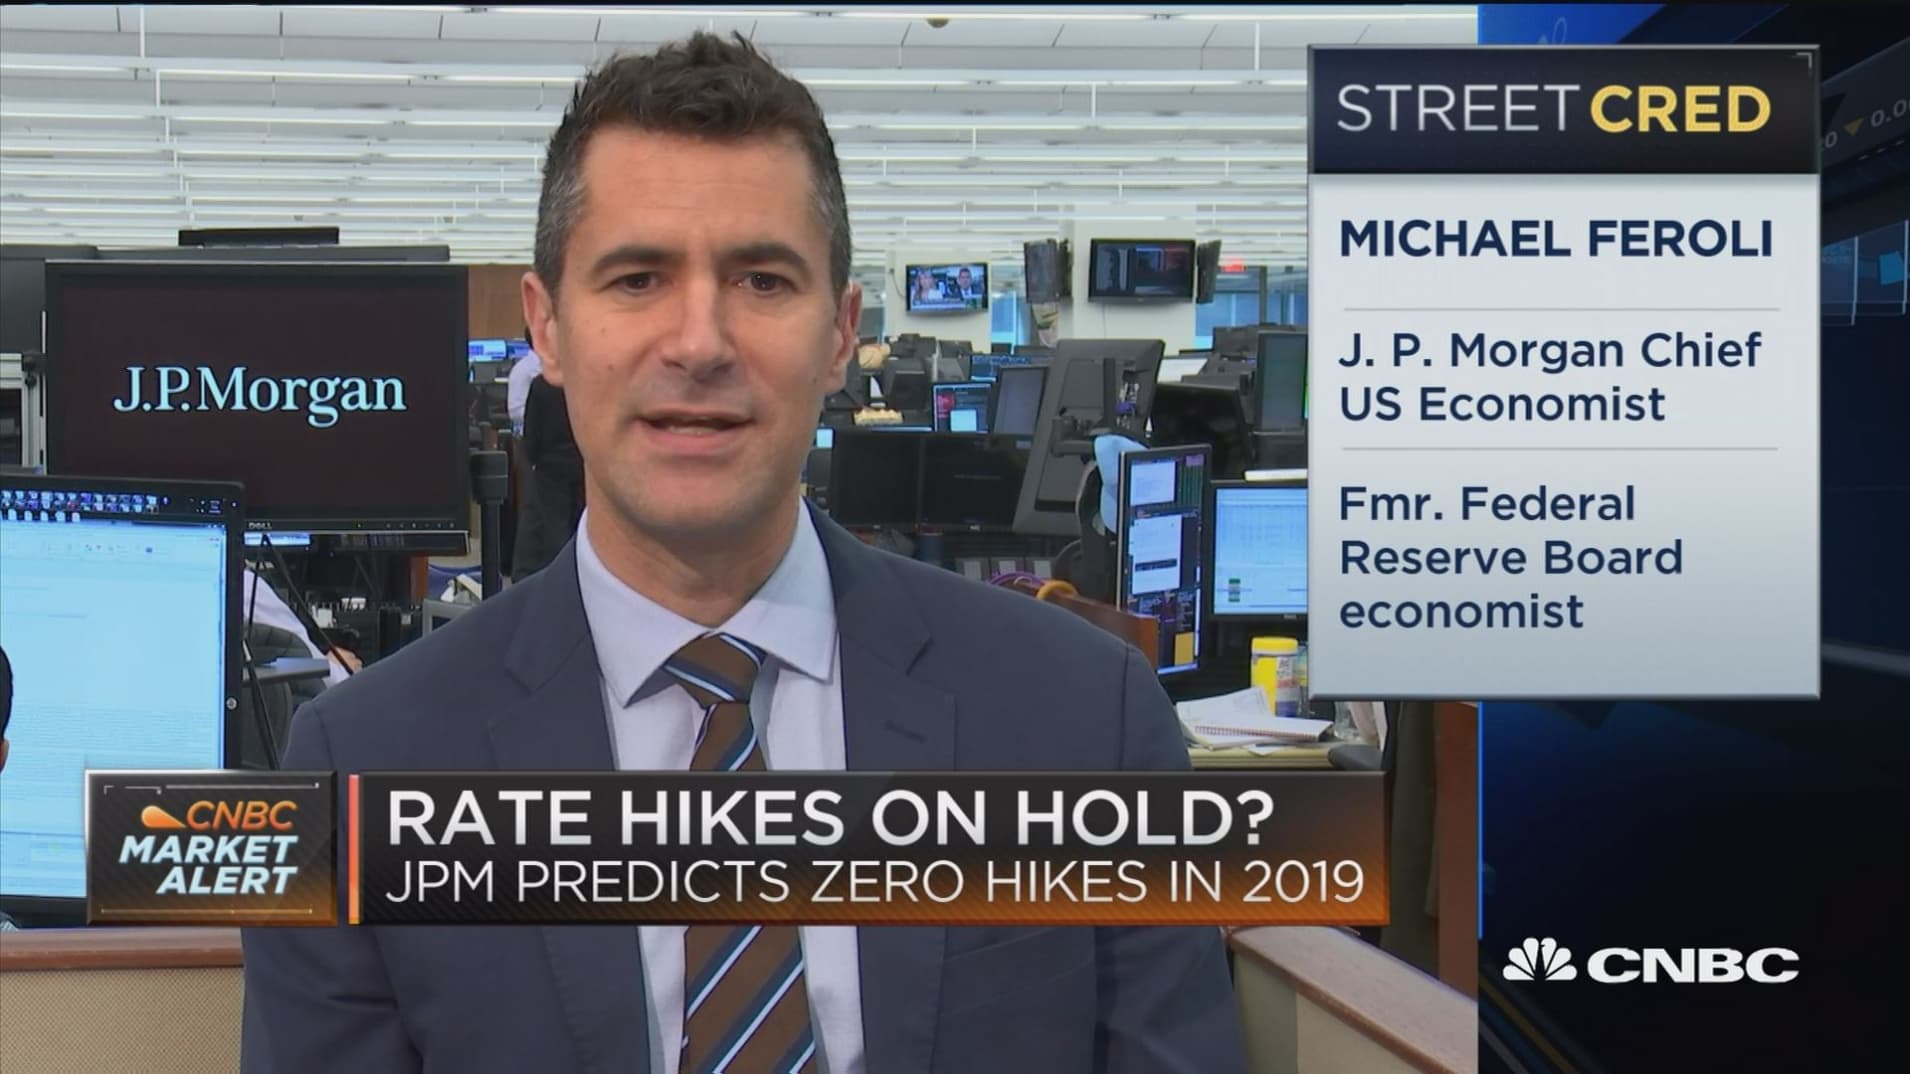 Fed will not raise rates in 2019, predicts JP Morgan chief economist